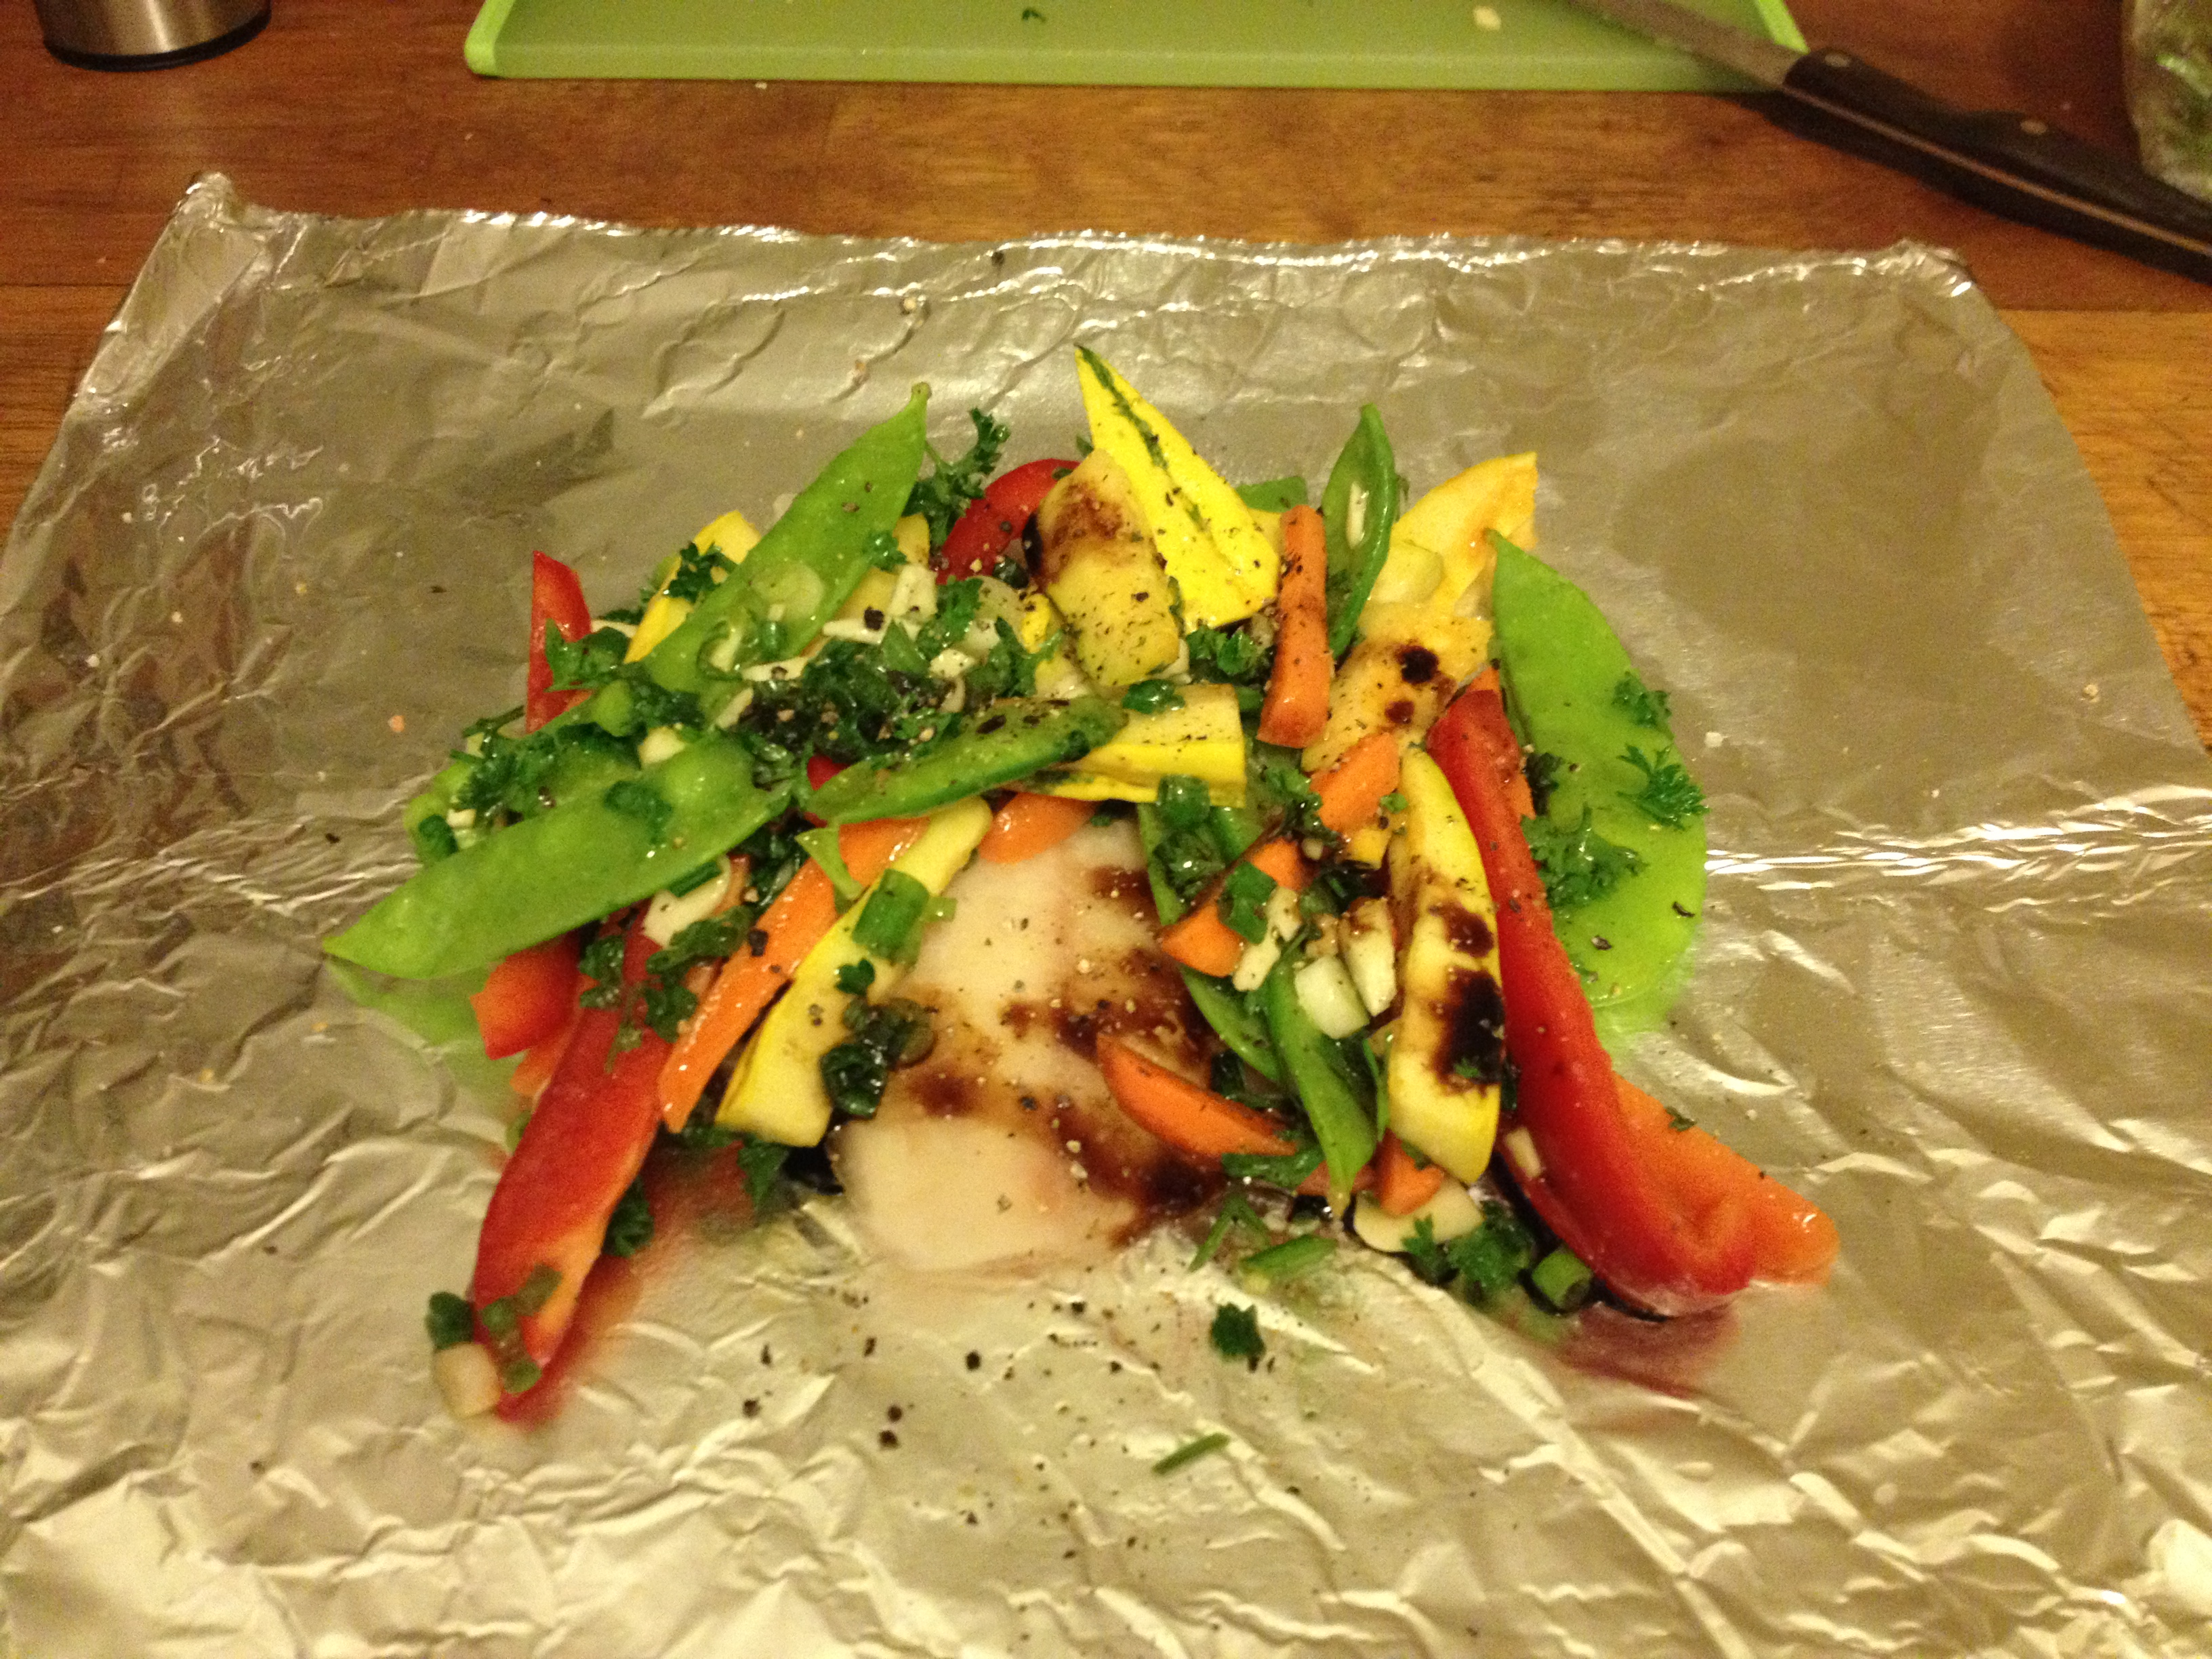 Foil baked tilapia with vegetables my favorite things for How to bake tilapia fish